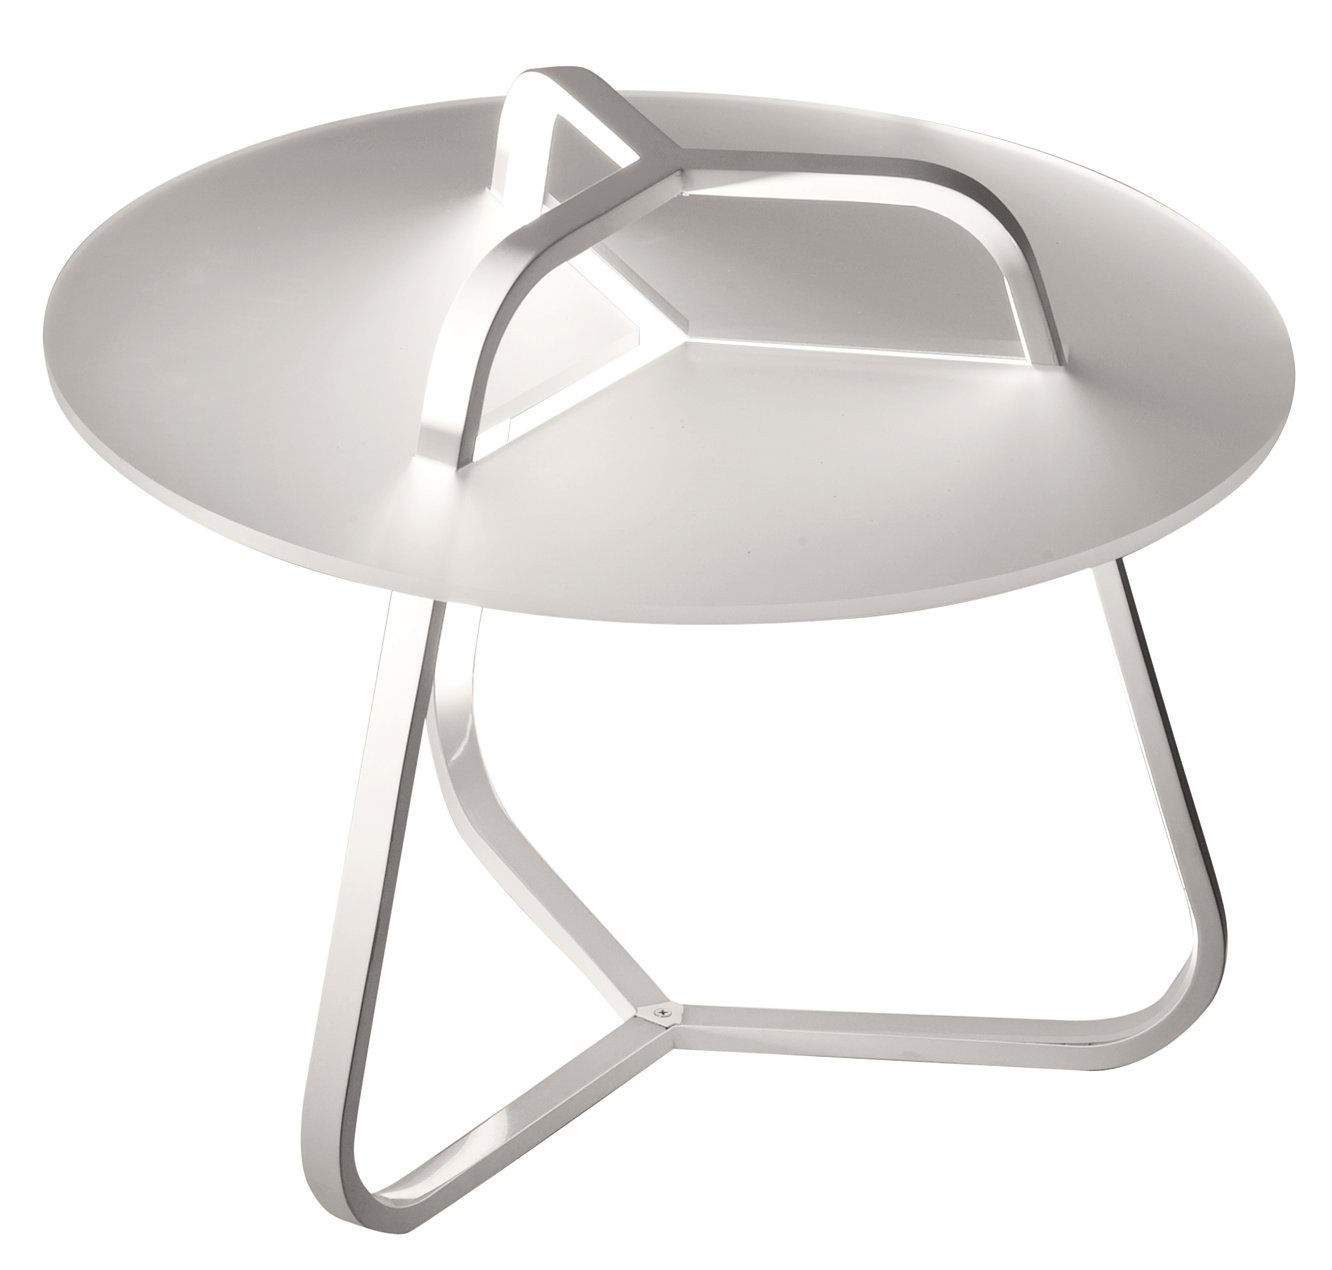 Furniture - Coffee Tables - Toy Illuminated side table - Side table - H 50 cm by Martinelli Luce - White - Aluminium, Methacrylate, Polycarbonate